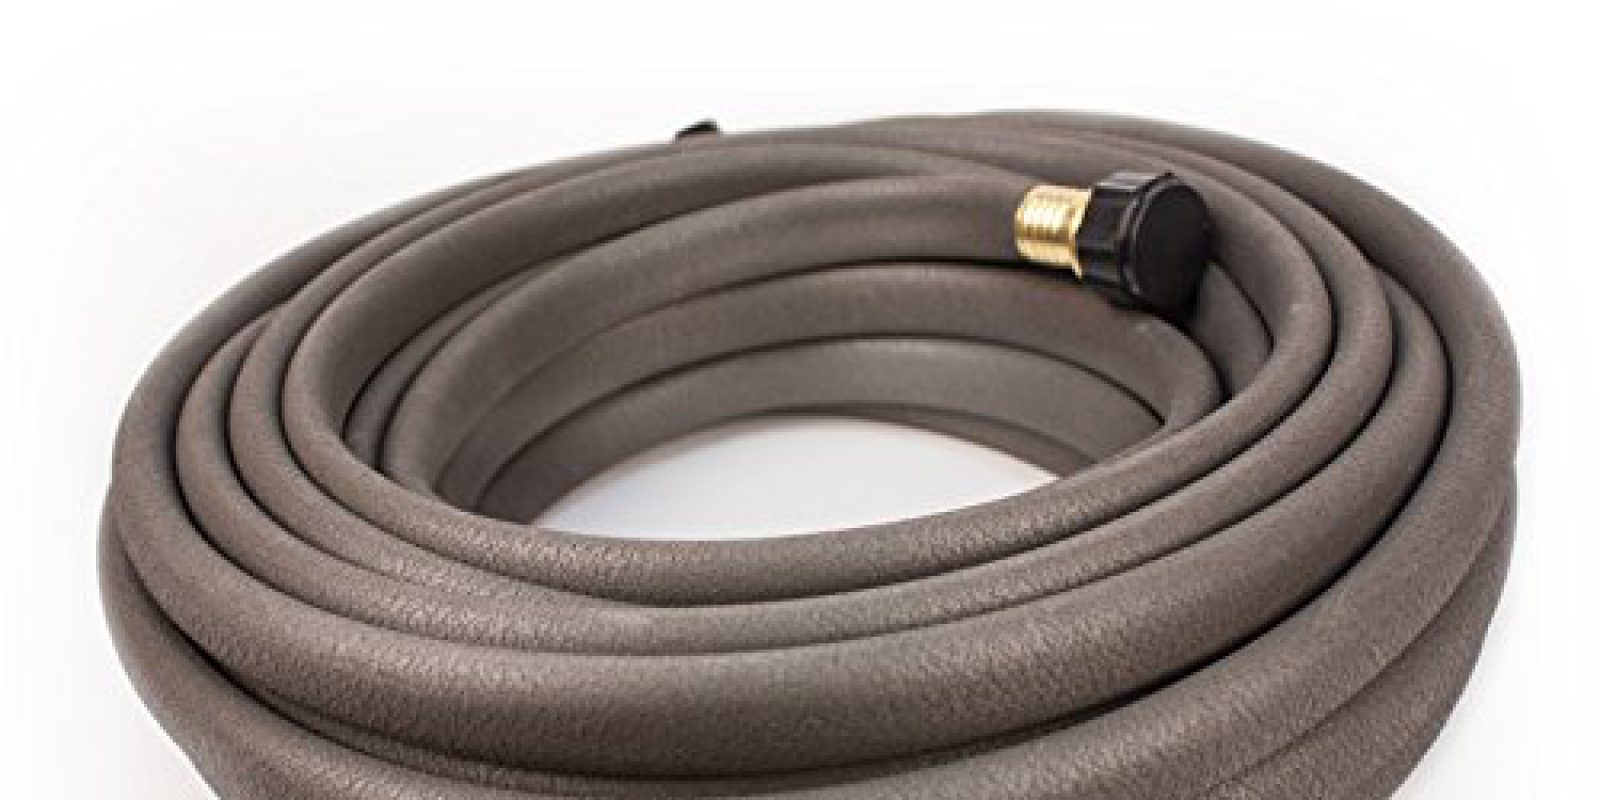 Soaker Hose Reviews Soaker Hoses Are Best For Watering Your Garden